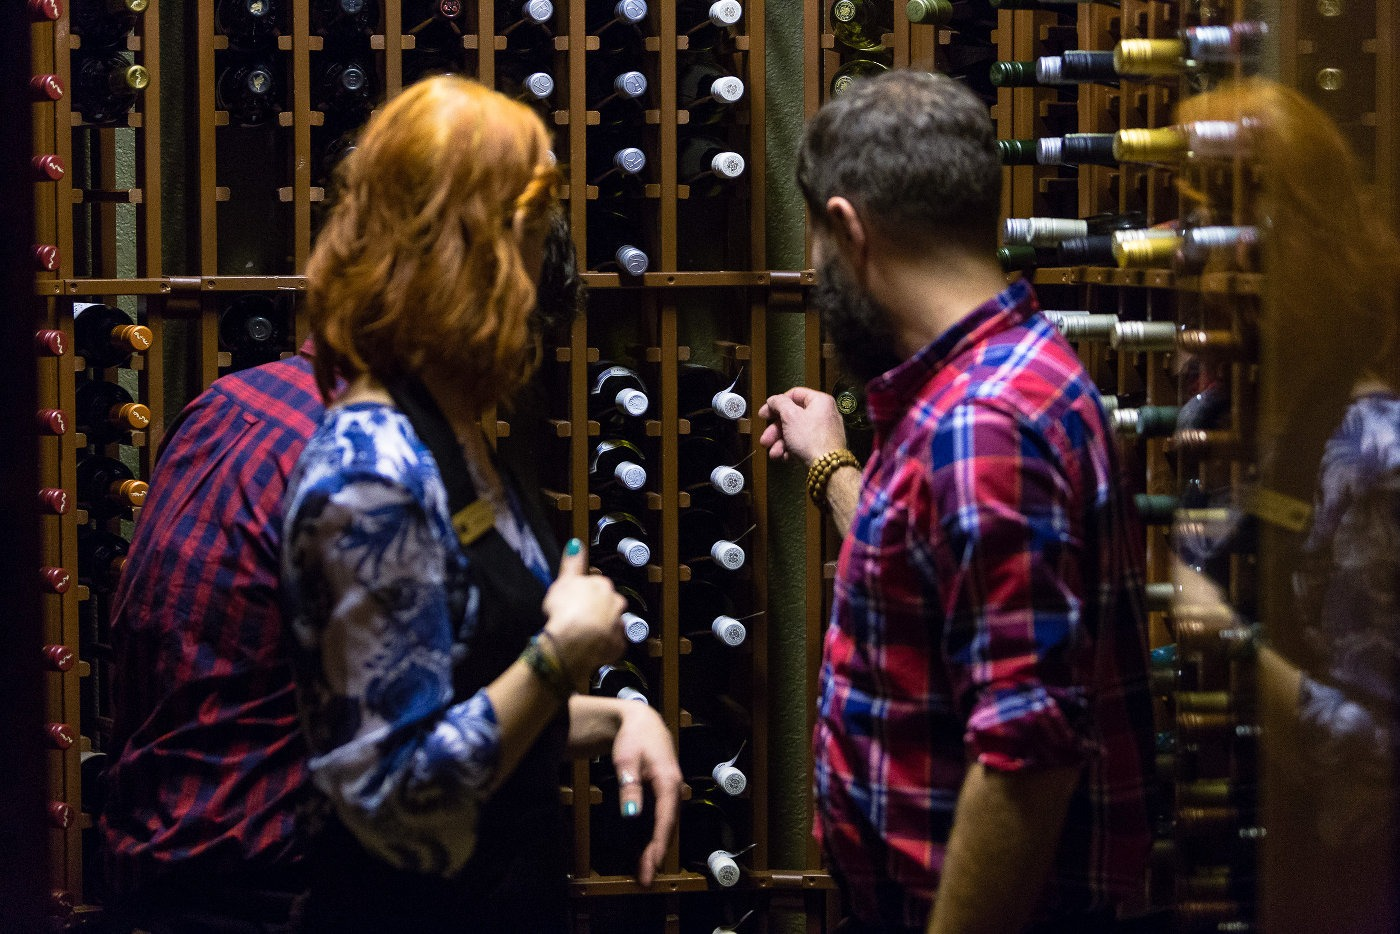 Two people selecting wine in in the cellar